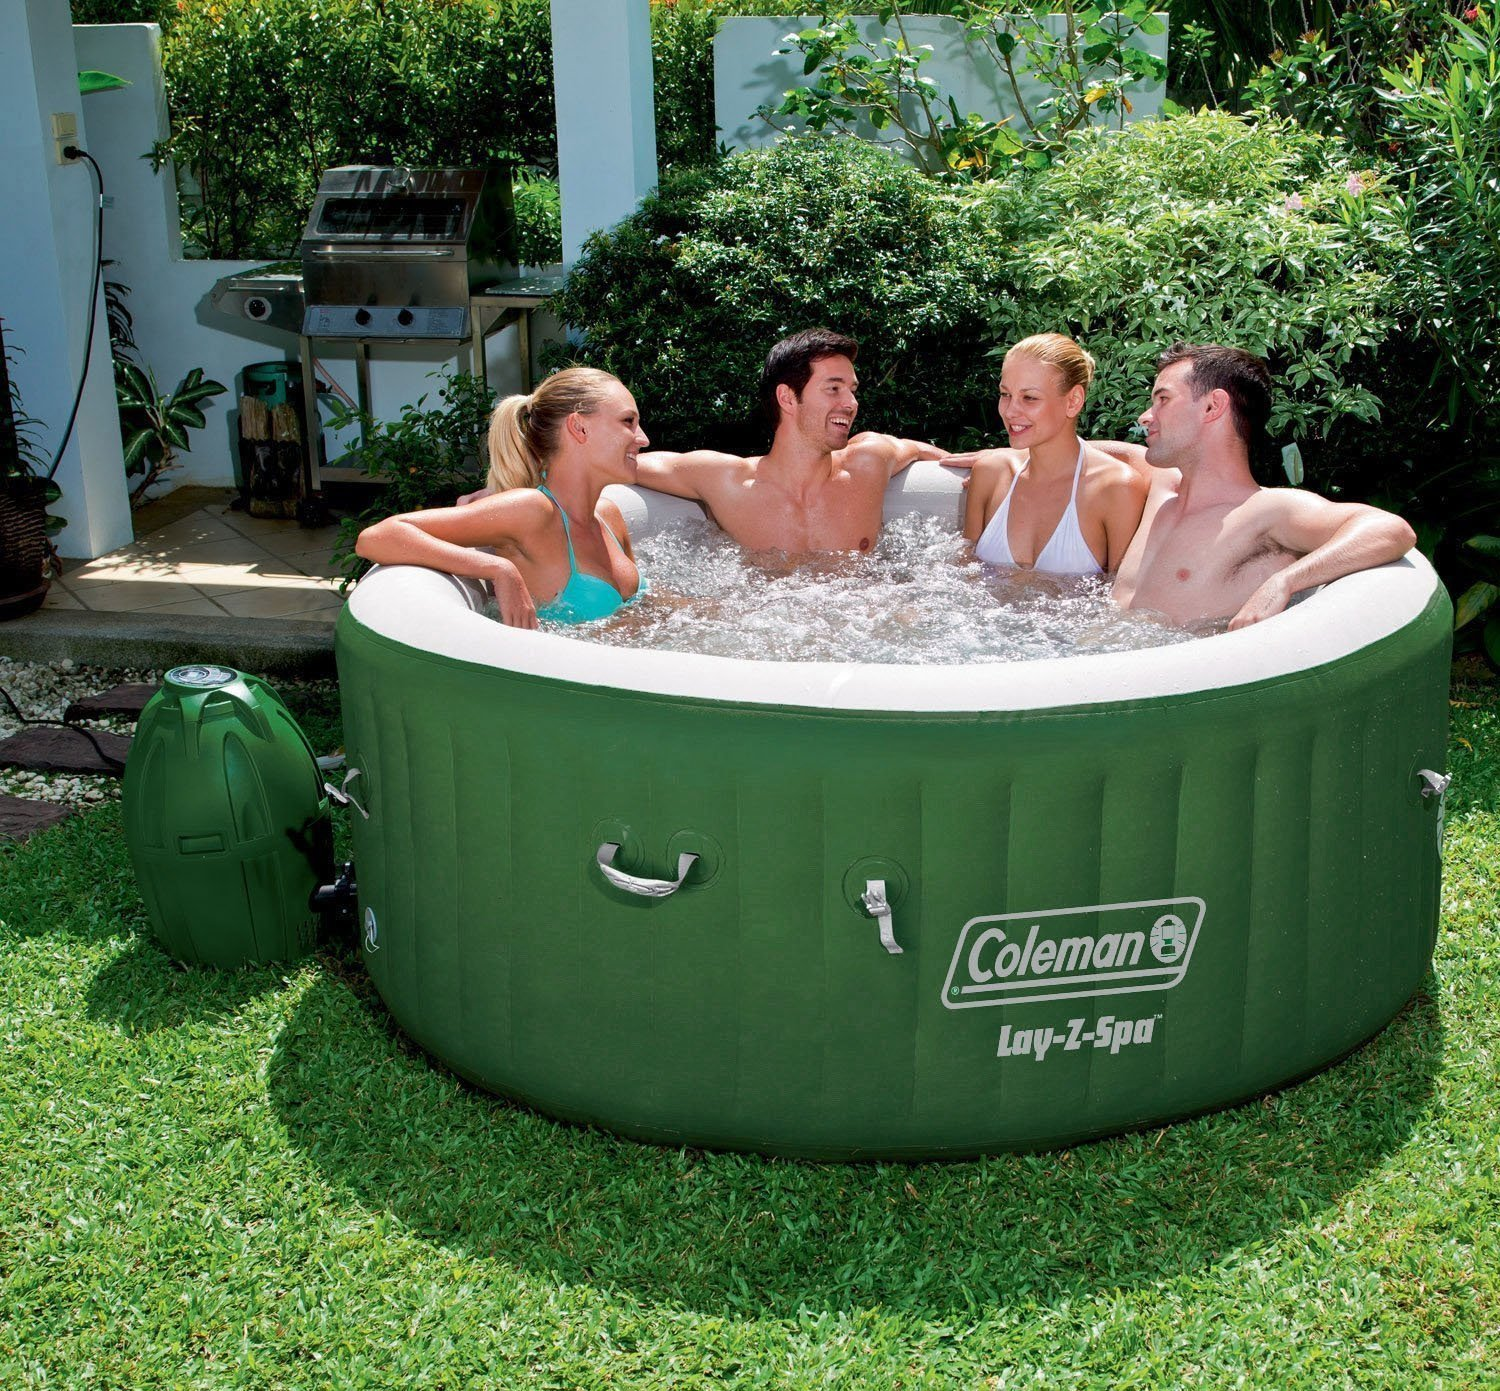 Coleman SaluSpa Inflatable Hot Tub (Detailed Review) - Laze Up!